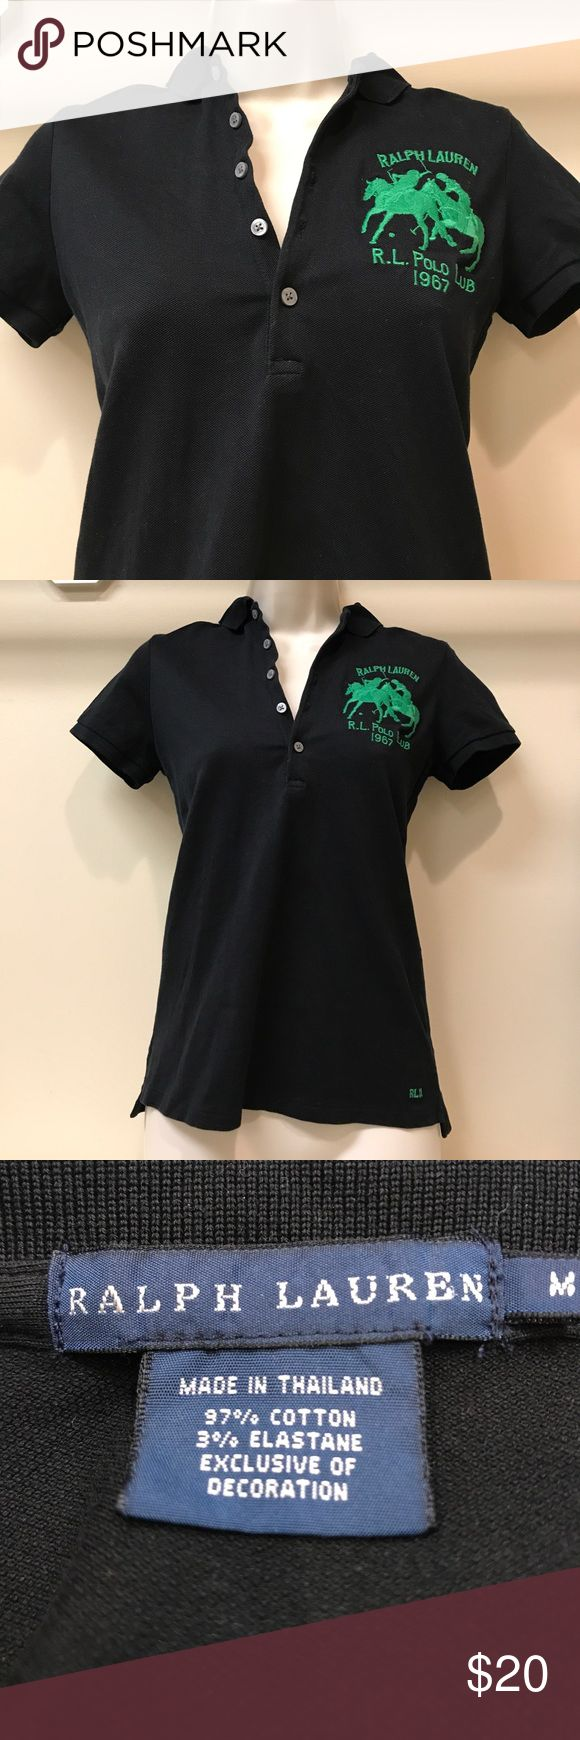 Ralph Lauren Polo golf shirt black w/ green logo Excellent used condition. Worn only once when I tried golf! Ralph Lauren Tops